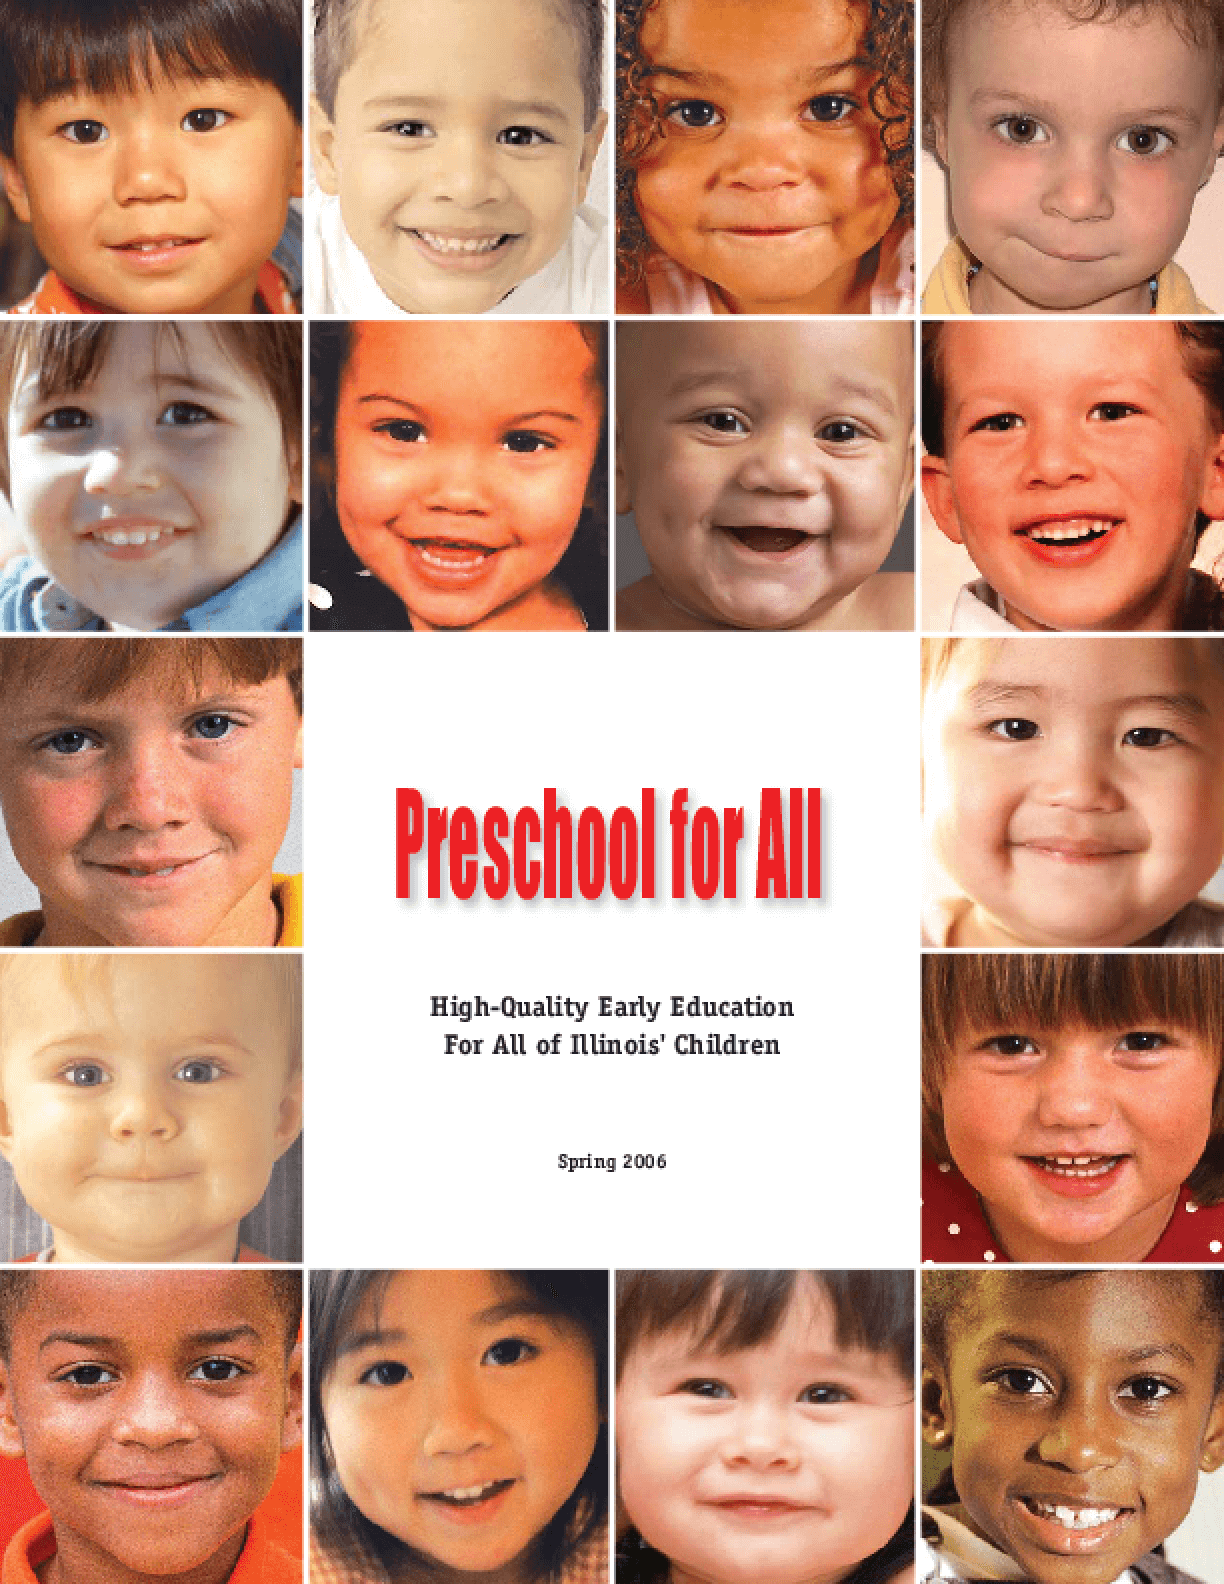 Preschool for All